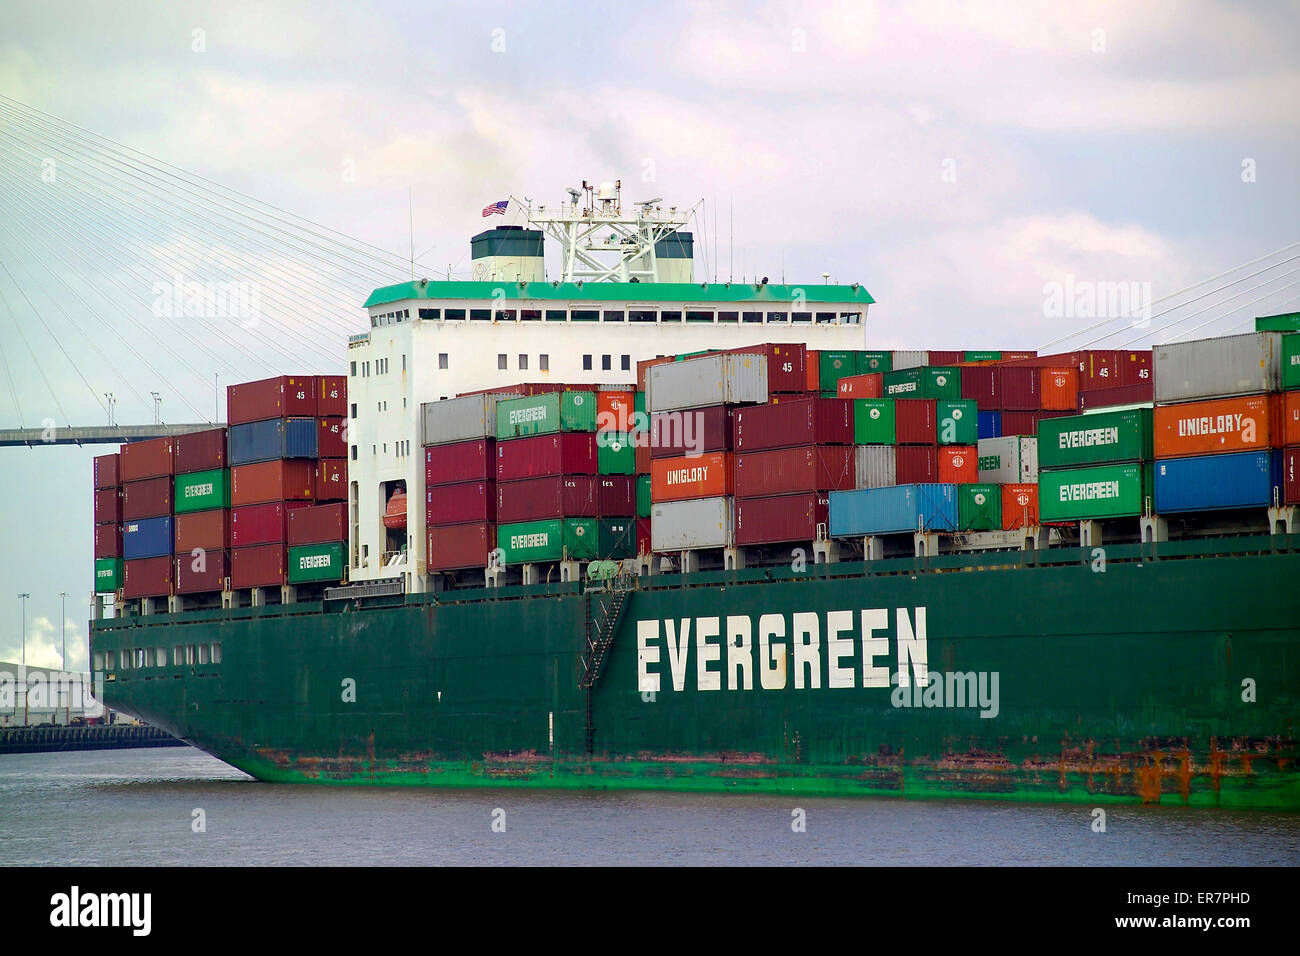 A close-up view of the stern of a huge container ship leaving the big and busy Port of Savannah in Georgia, USA. - Stock Image